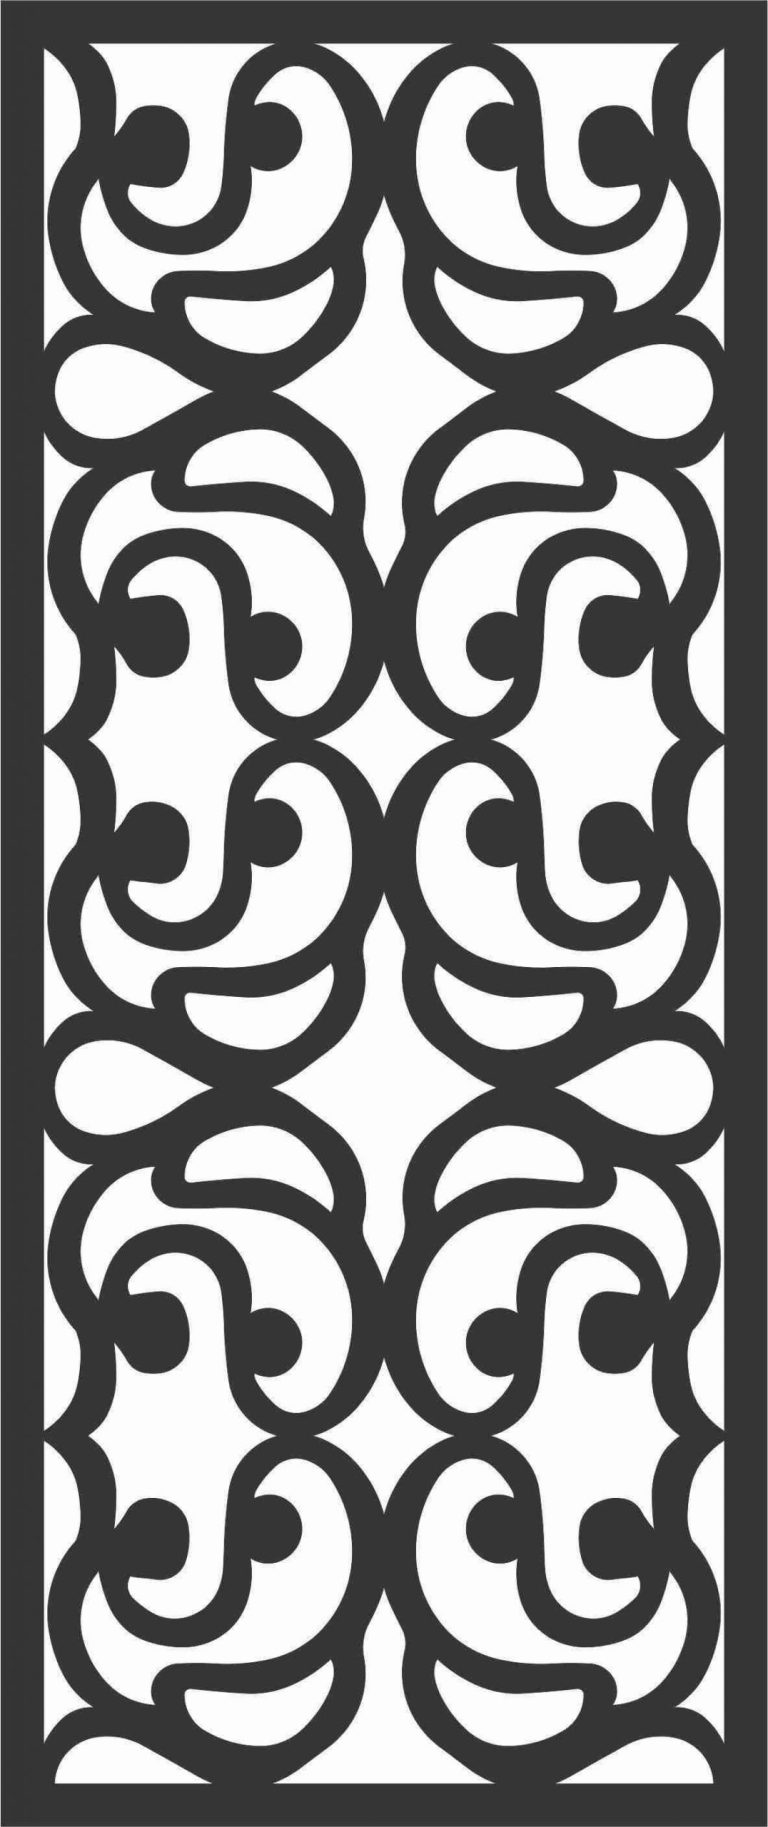 Floral Screen Patterns Design 51 Free DXF File